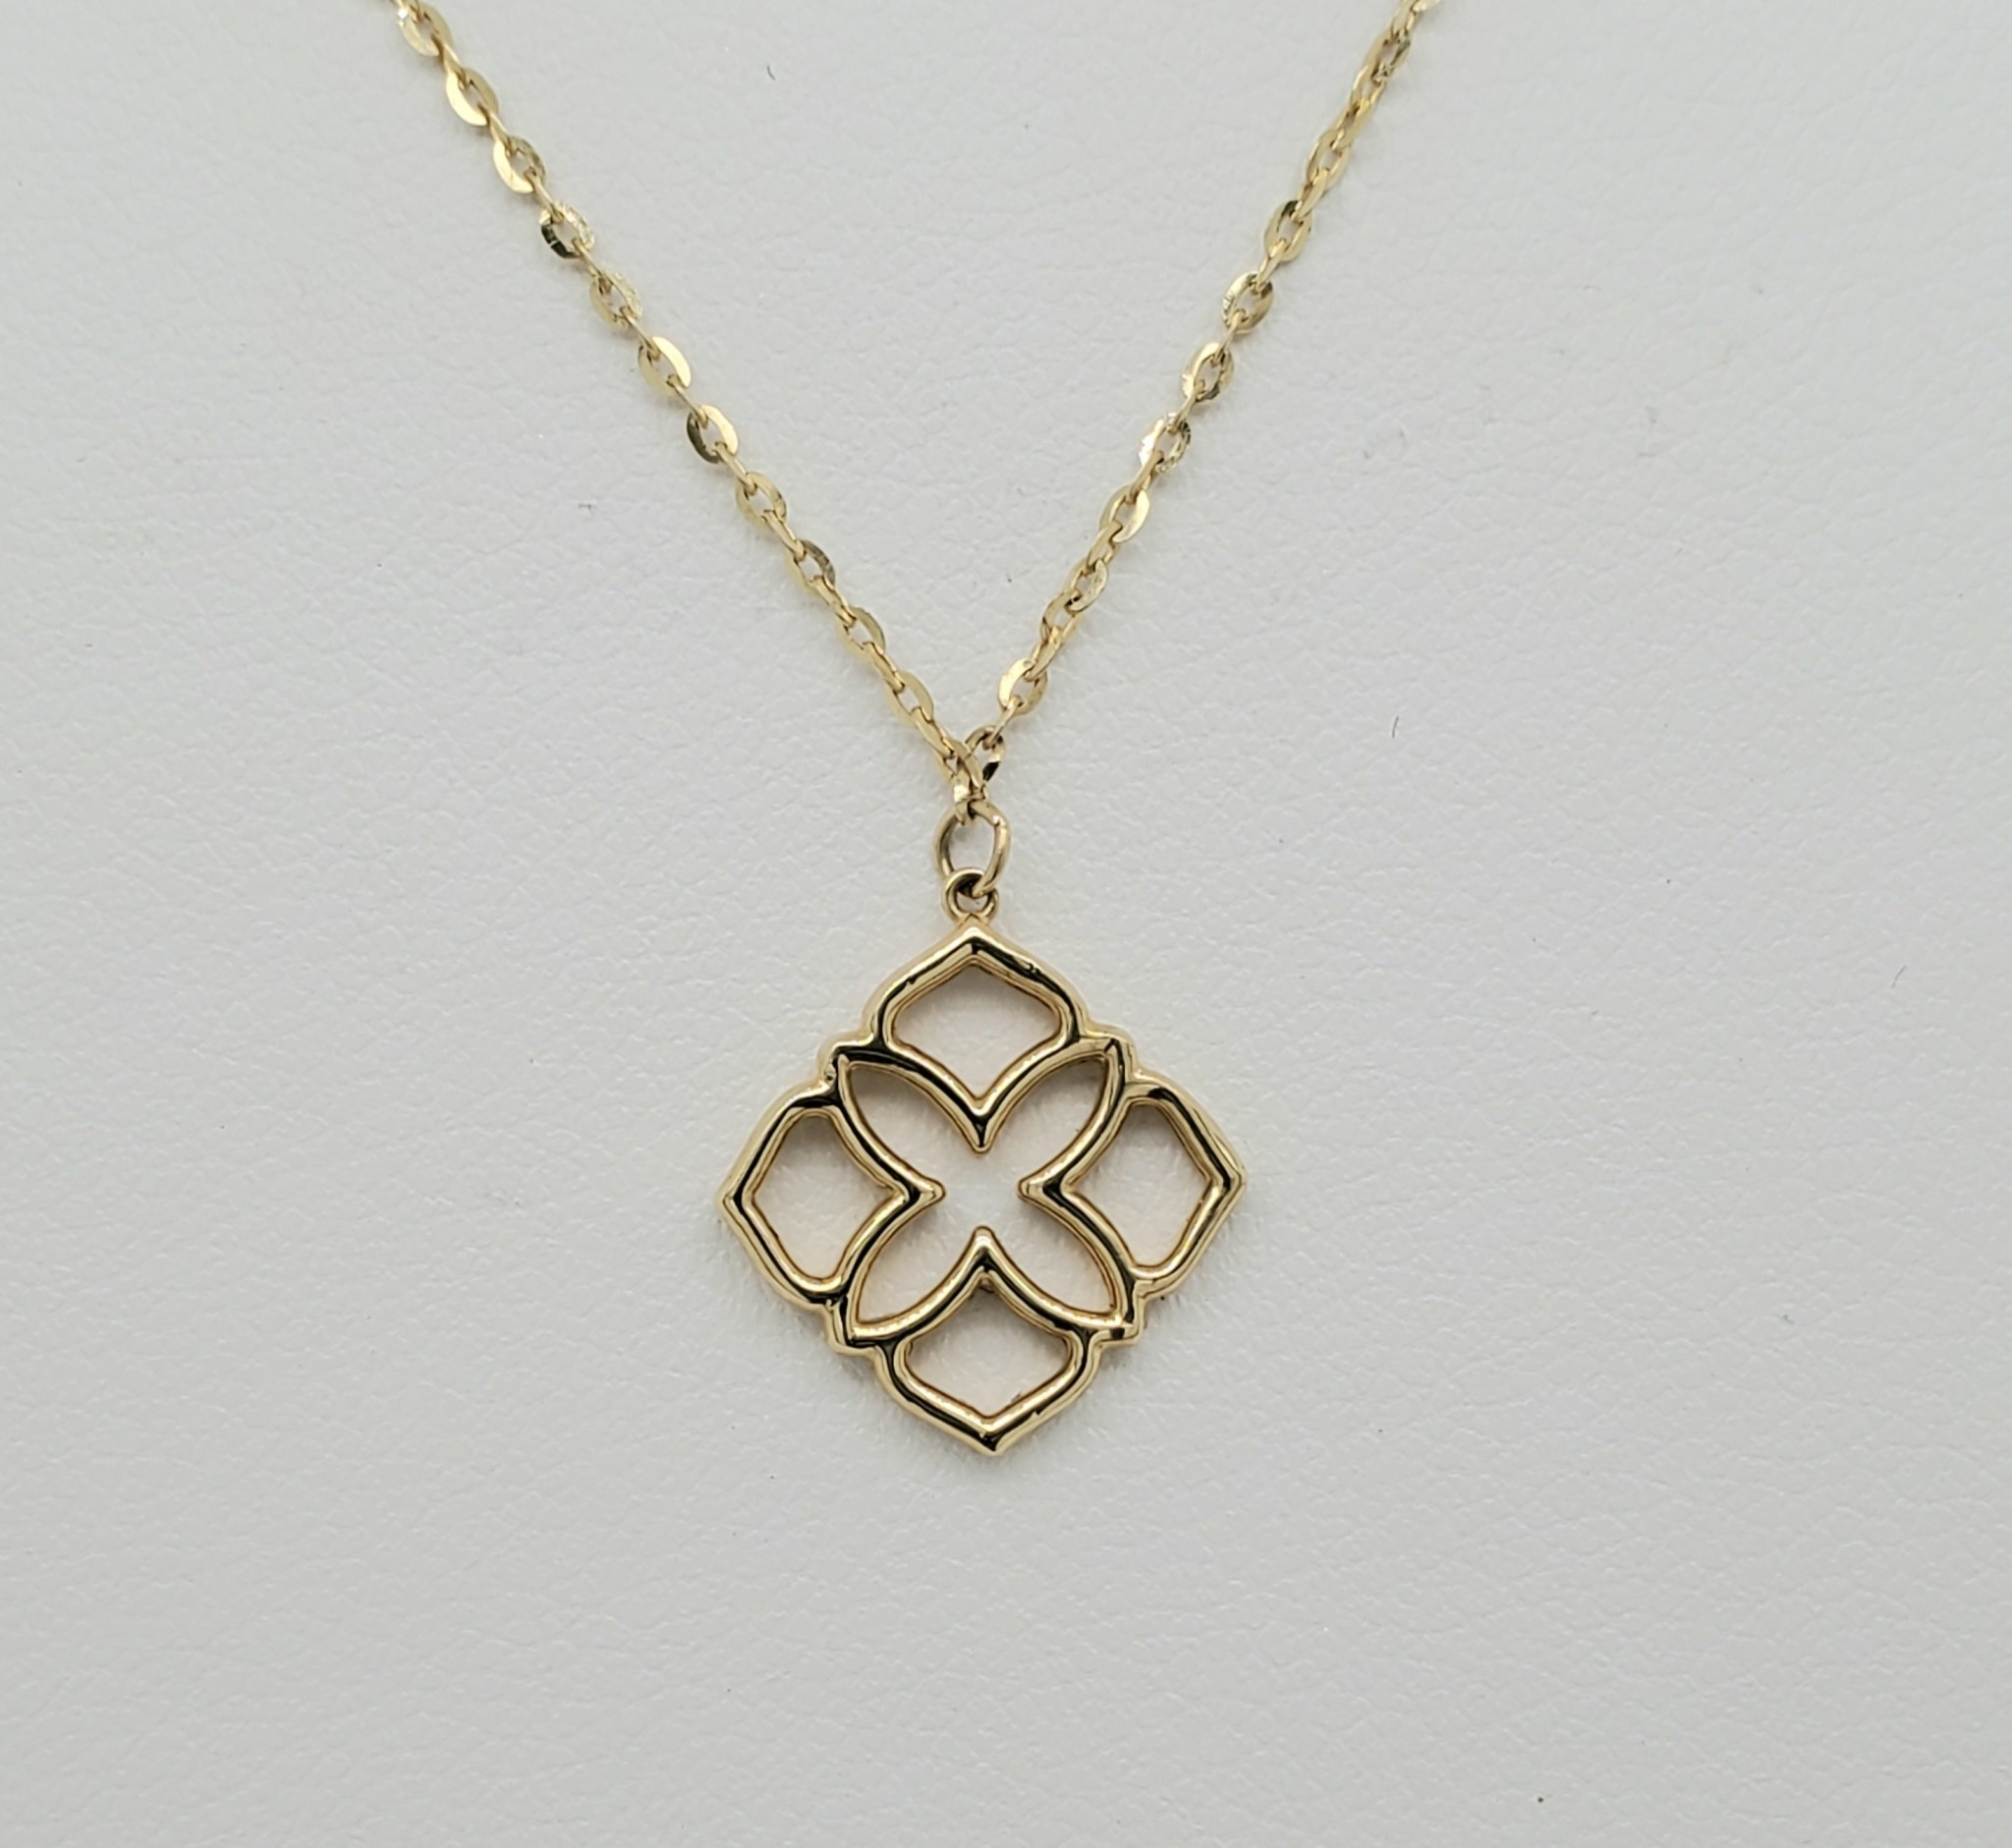 14KT Yellow Gold Flower Necklace